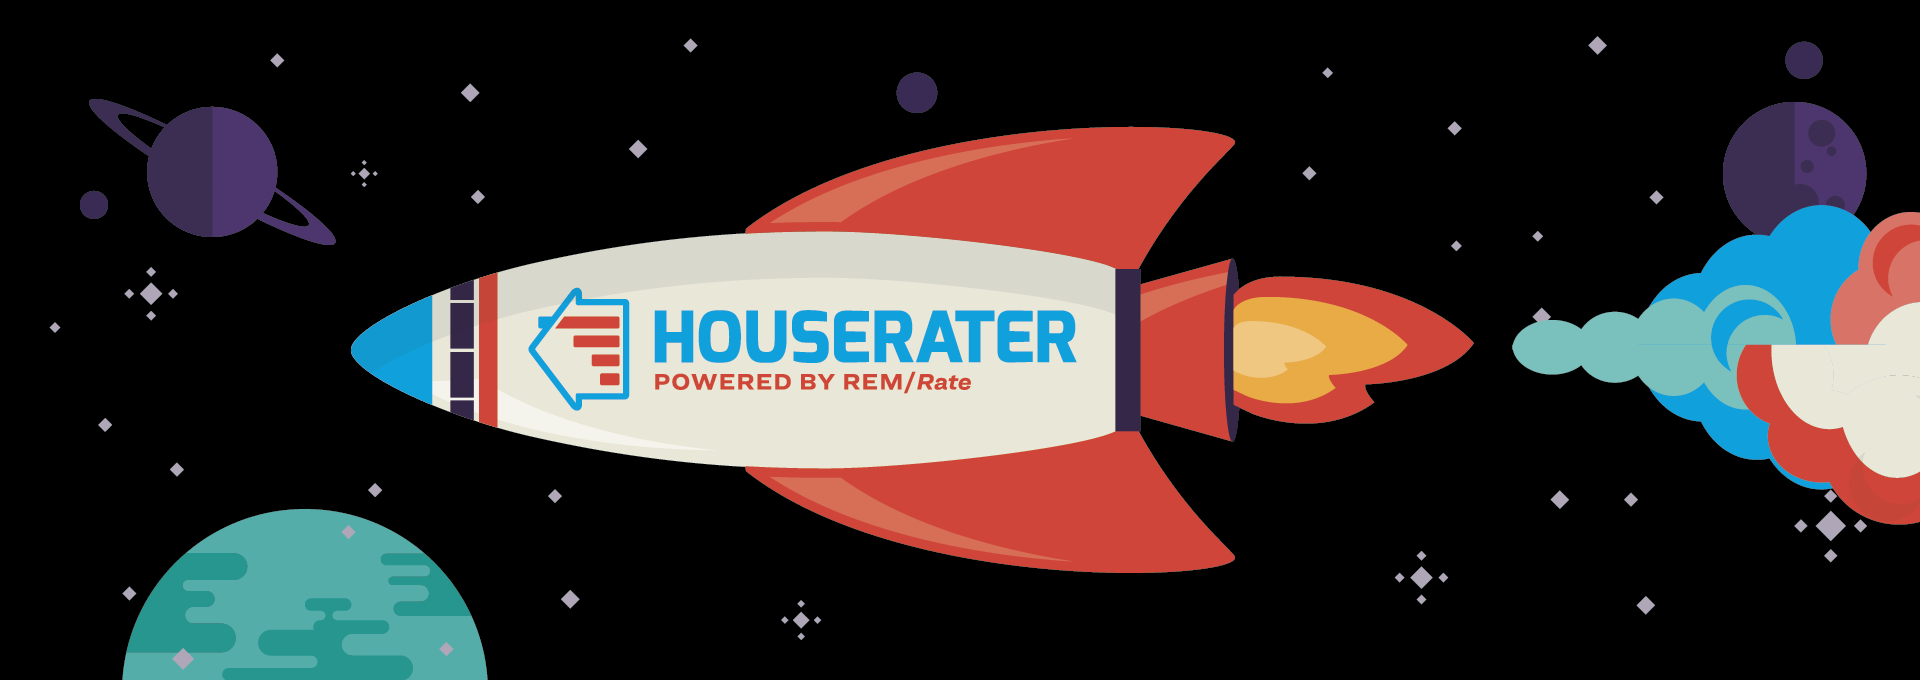 The HouseRater energy rating service rocket powered by REM/Rate flying through space